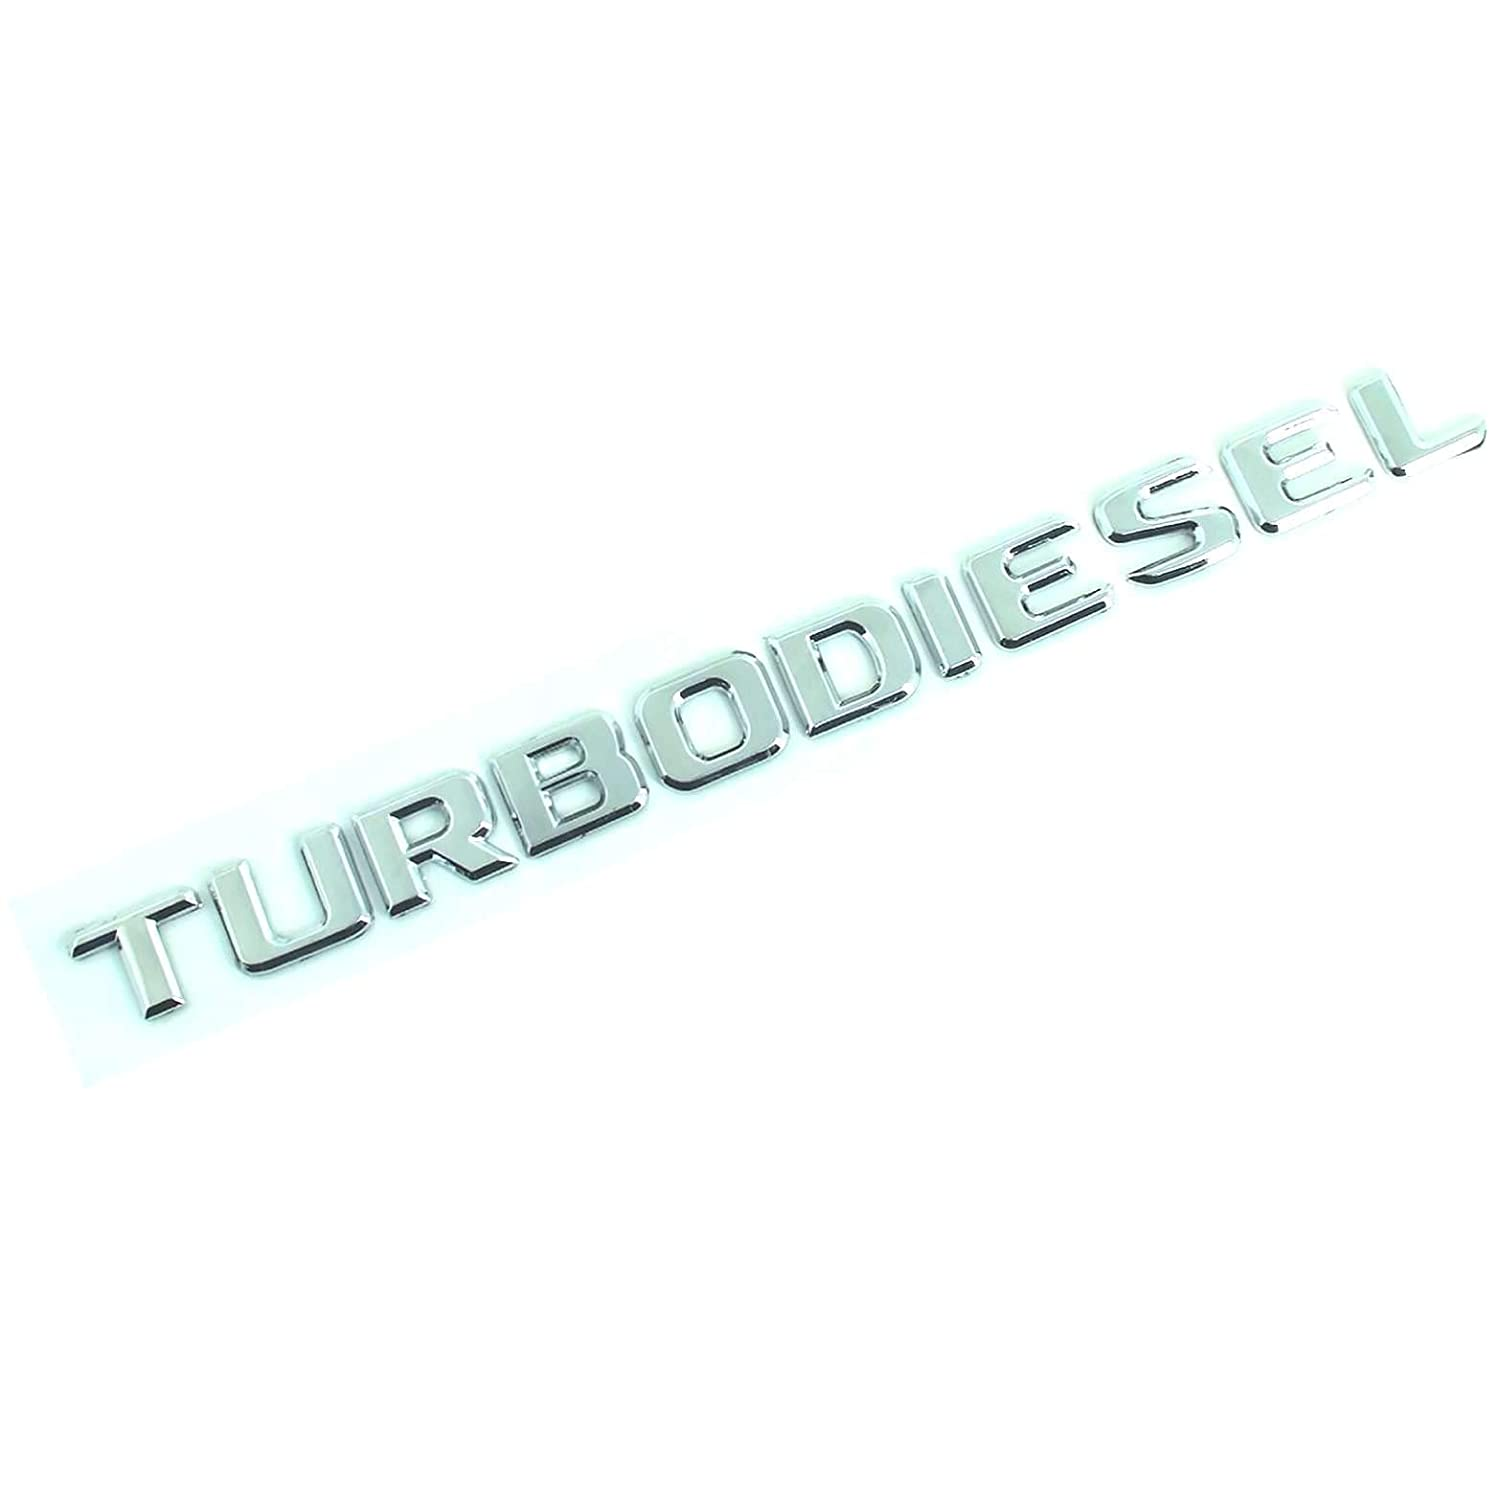 Turbodiesel Turbo Diesel Chrome Badge Emblem Logo Fender Trunk Side Body Hood Chromed Decal Sticker 3D Car Auto Adhesive Replacement Truck Van Sports Diy Name Plate Swap Abs Plastic TOTUMY 1 Piece